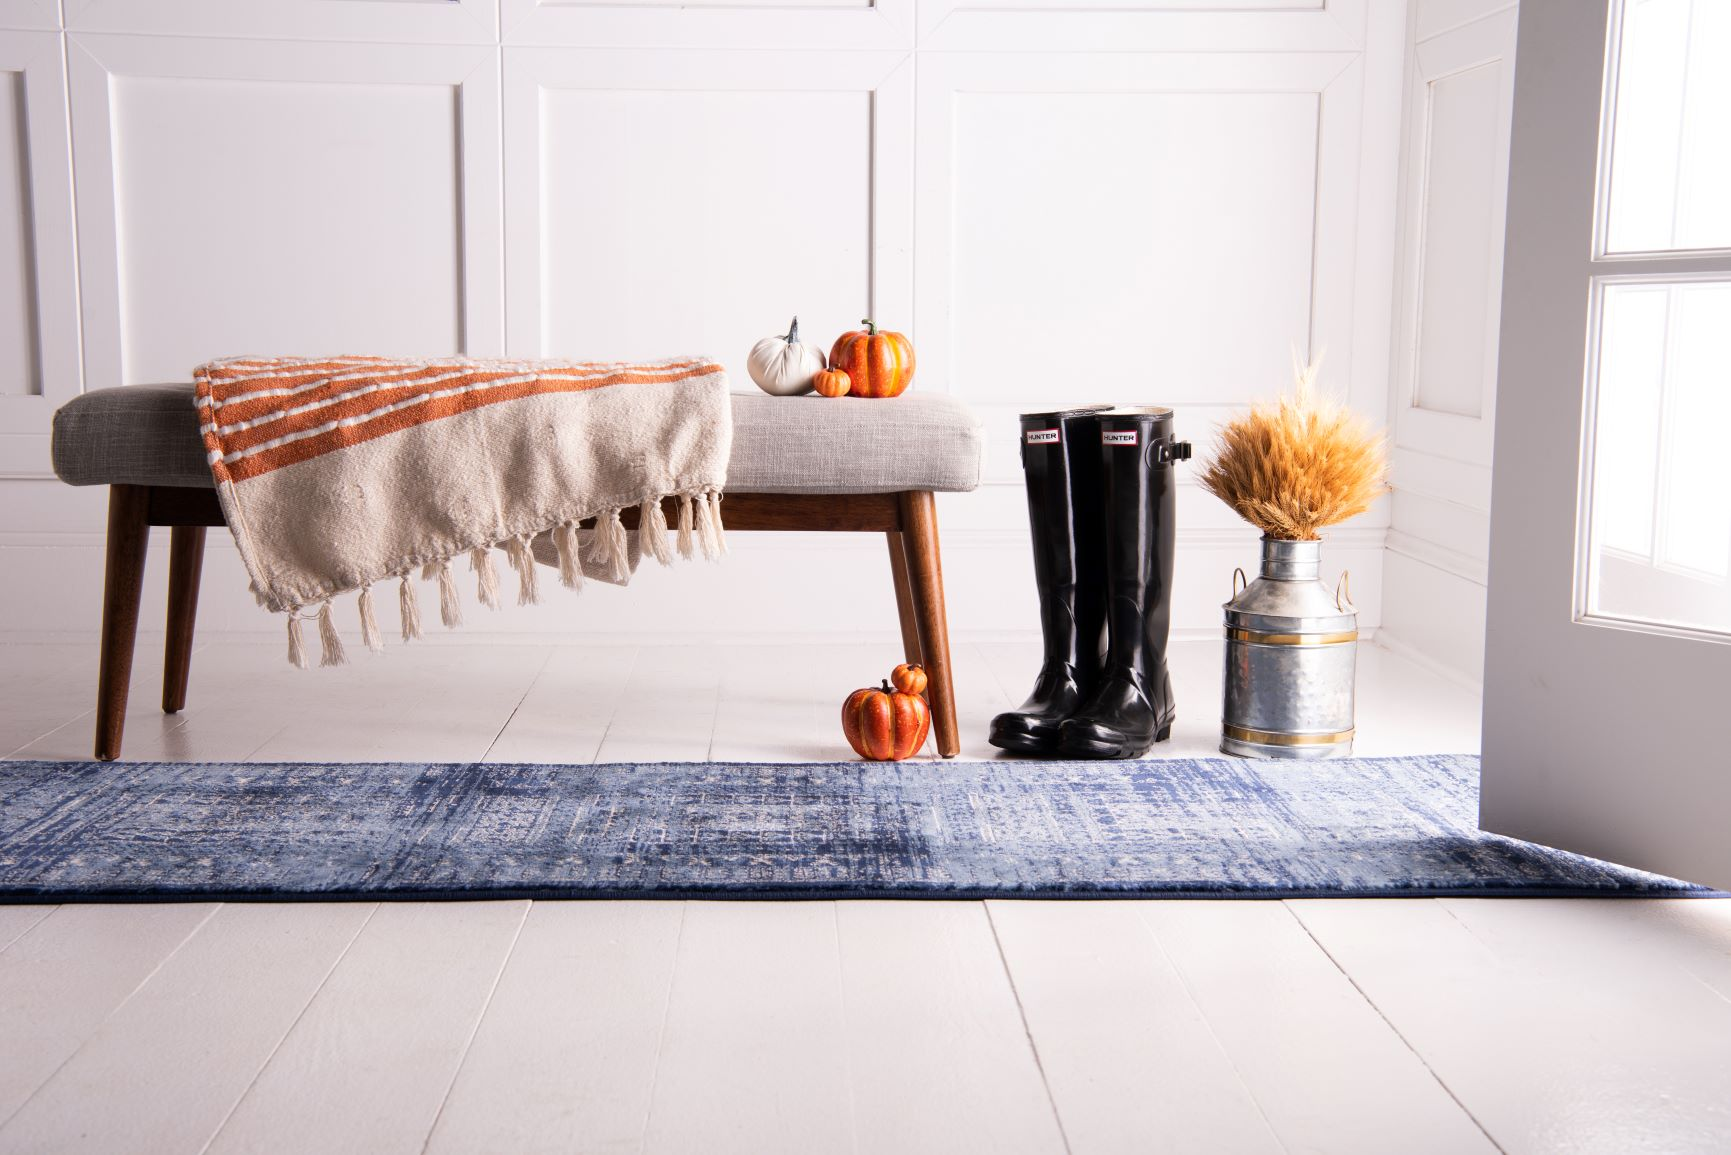 Kennedy runner rug with fall decor